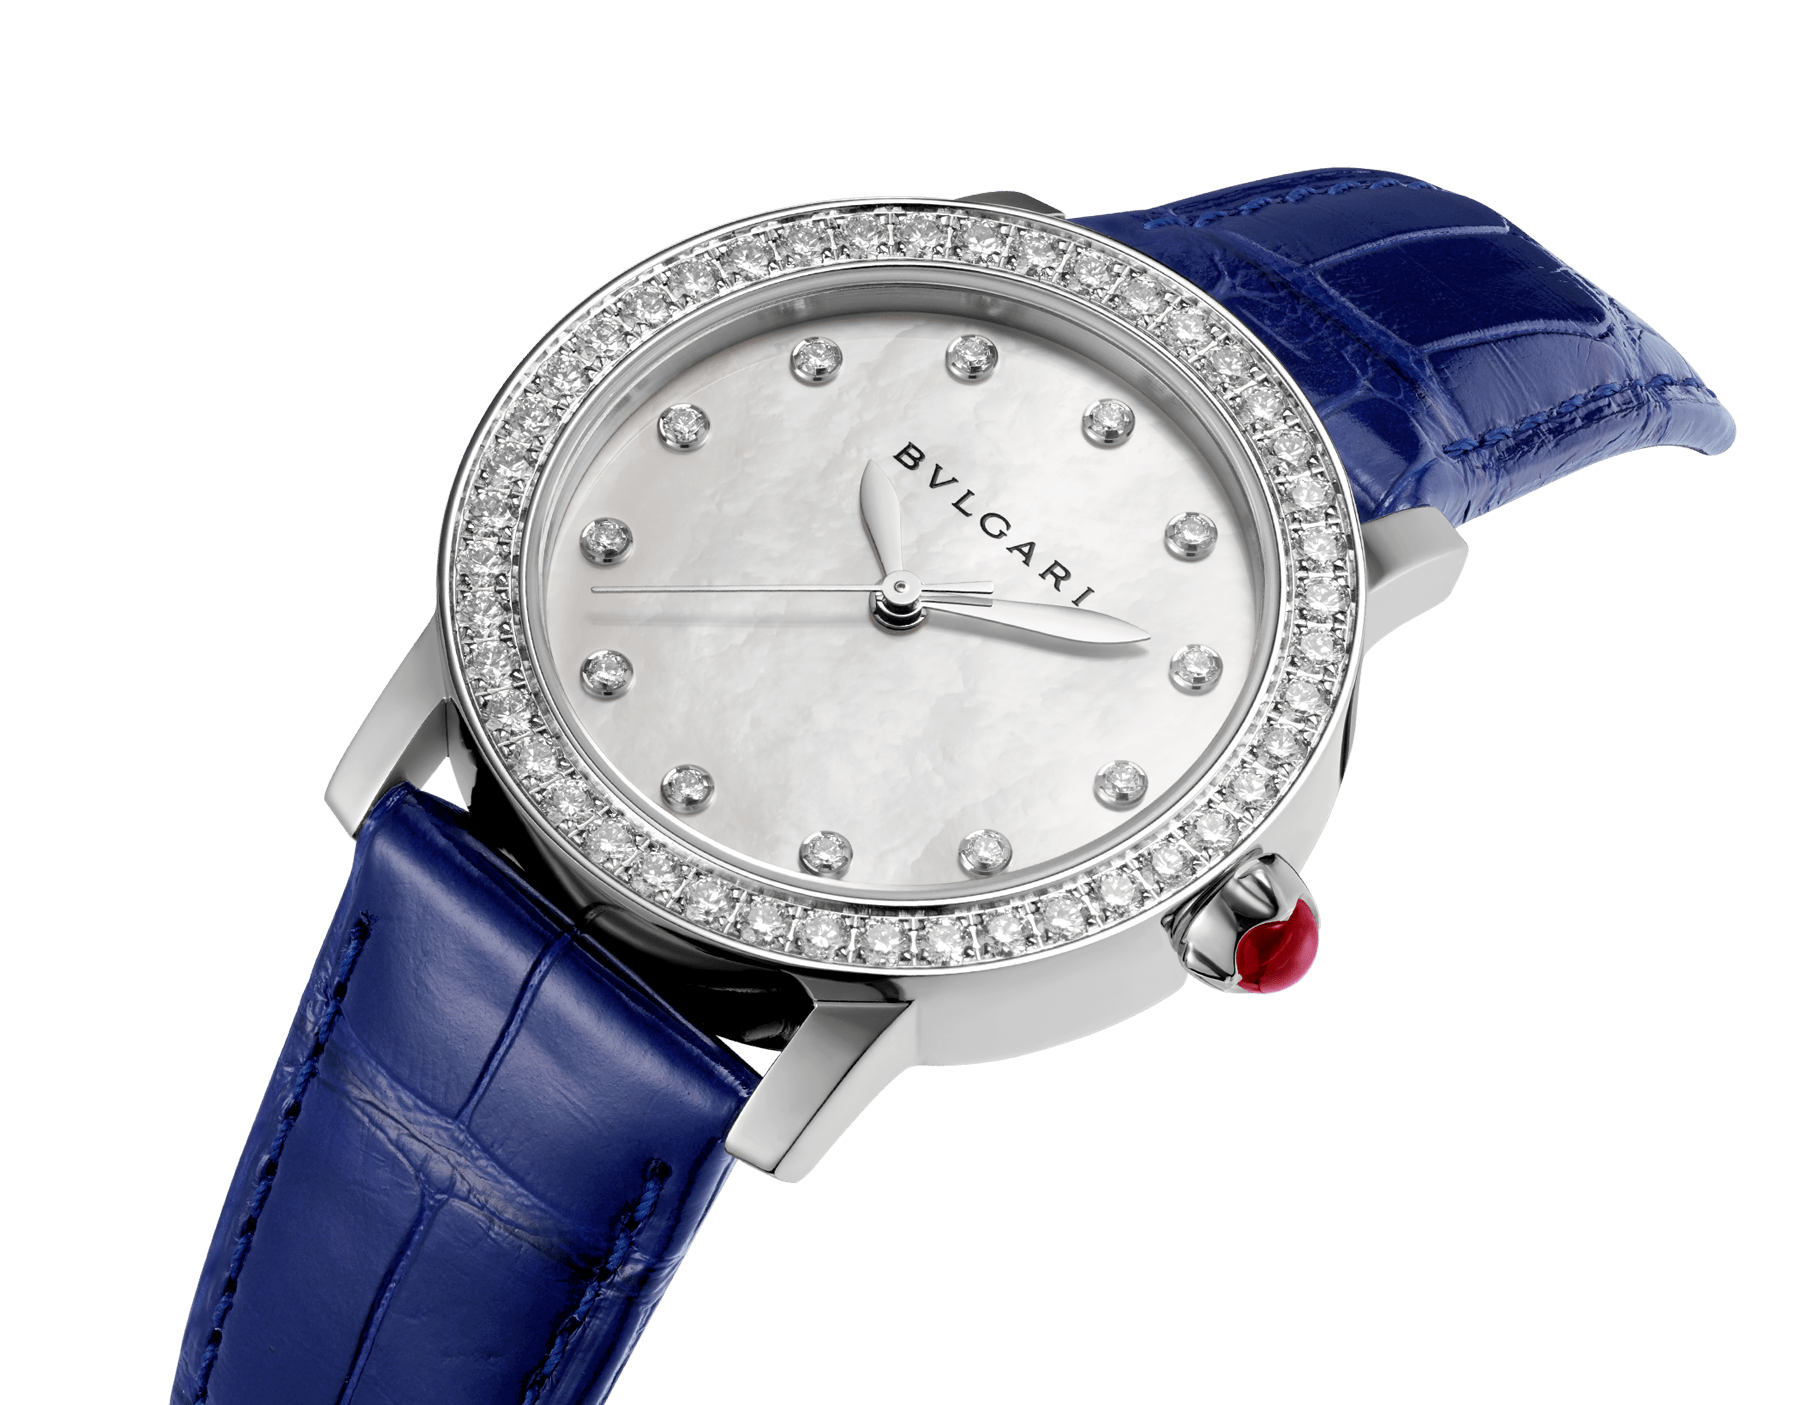 BVLGARI BVLGARI watch with stainless steel case set with brilliant-cut diamonds, mother-of-pearl dial, diamond indexes and shiny blue alligator bracelet 102721 image 2